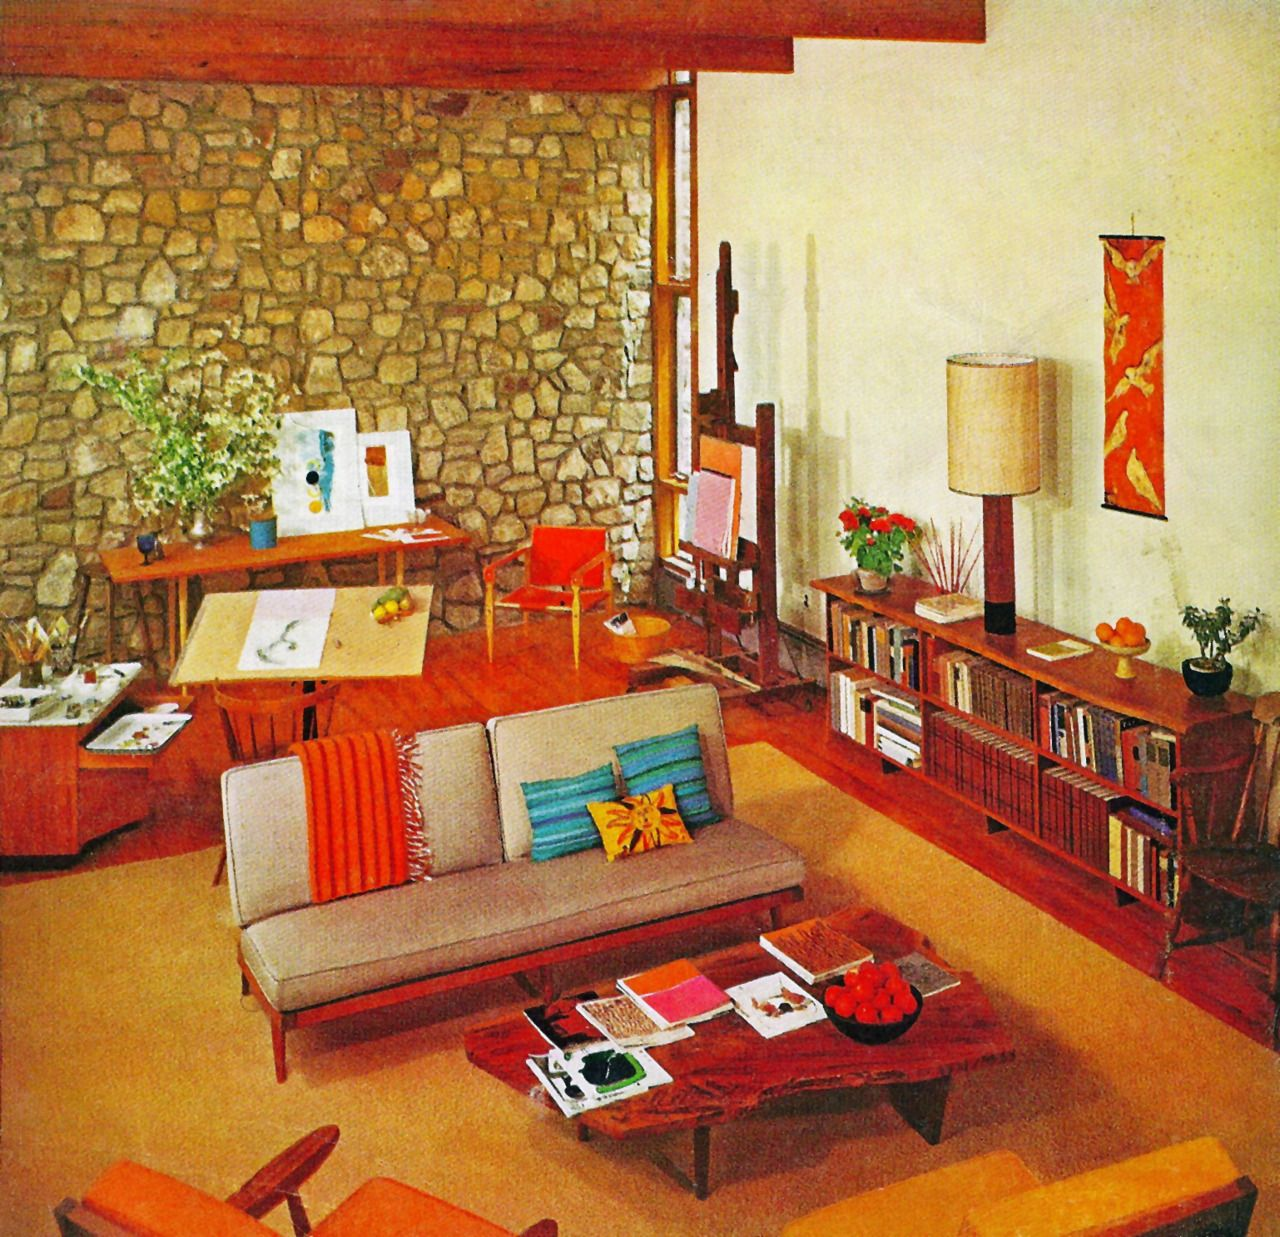 the fantasy decorator: the retro decorator - 1967 living room